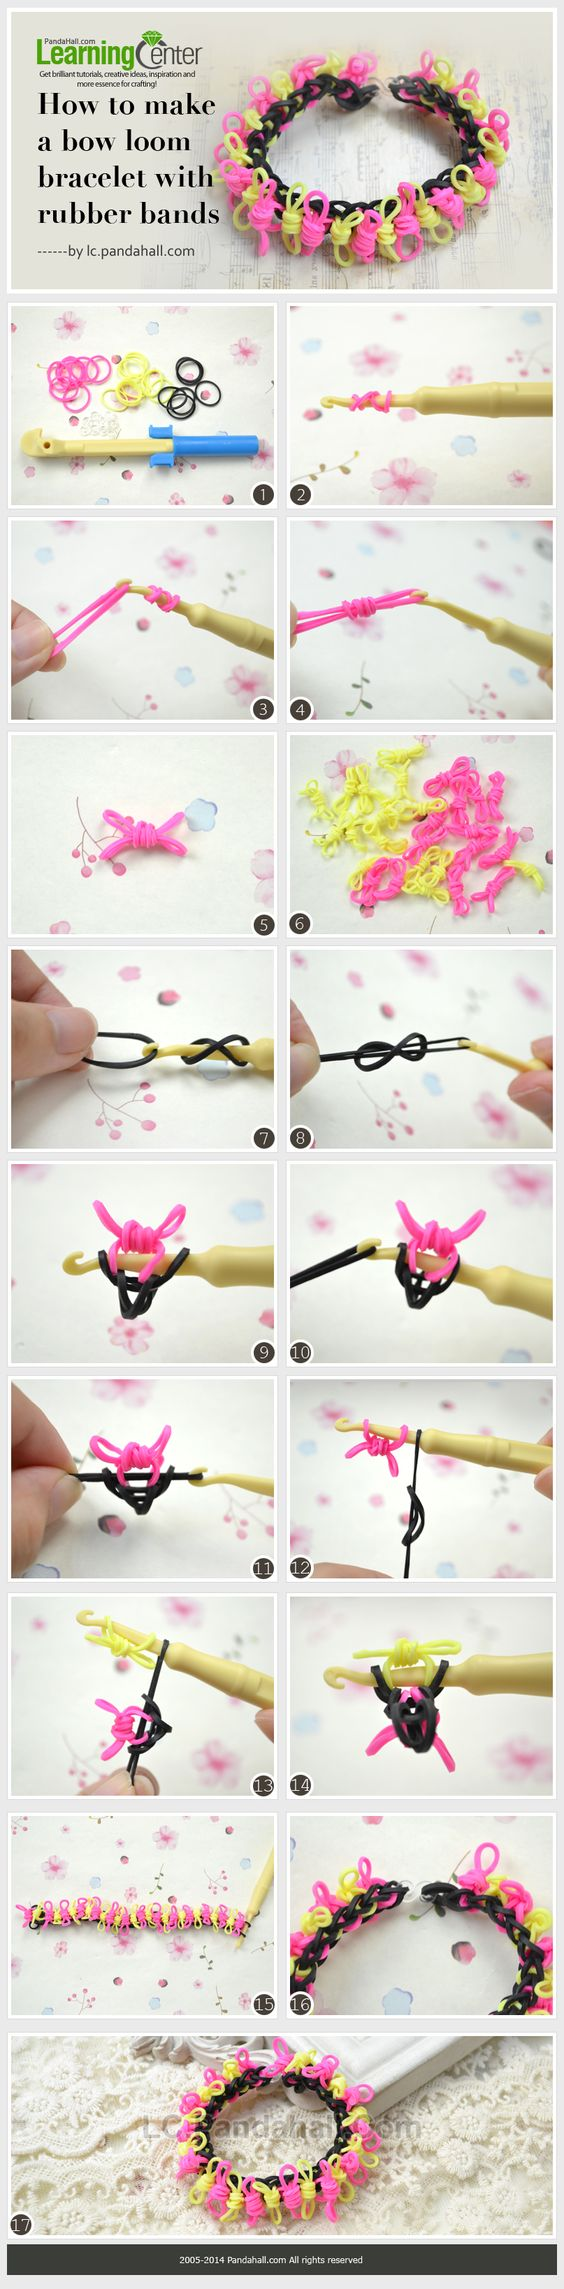 How to Make a Bow Loom Bracelet with Rubber Bands